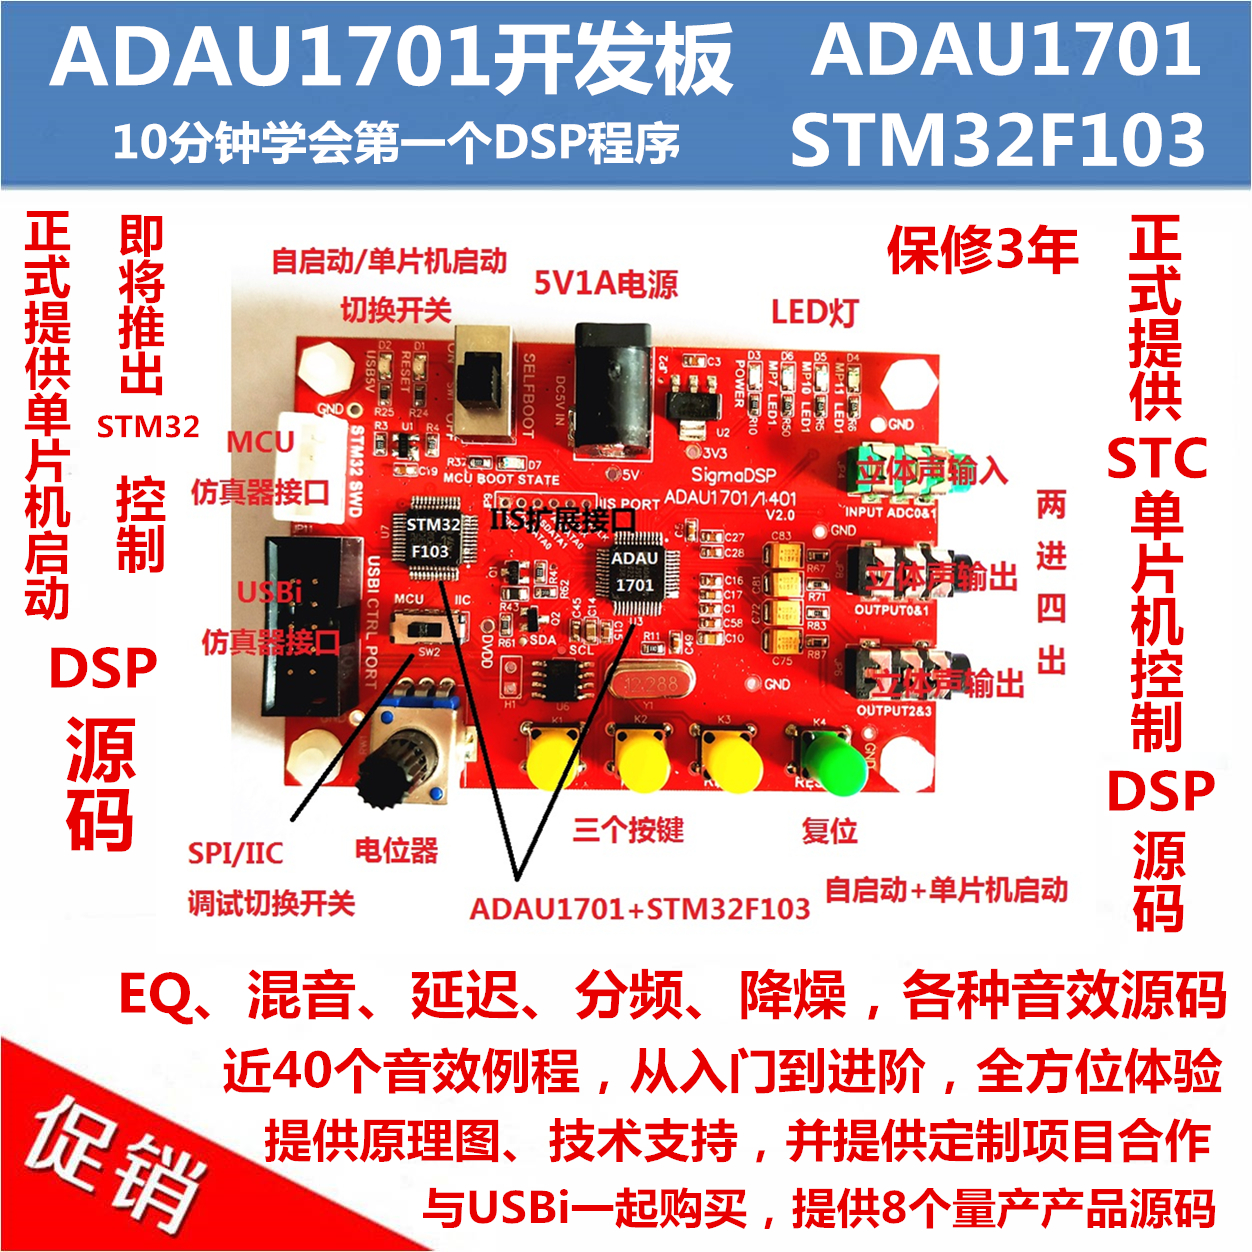 Mcu Sigmadsp Development Board openadsp Open Source Community Liberal Adau1701 Development Board Dsp